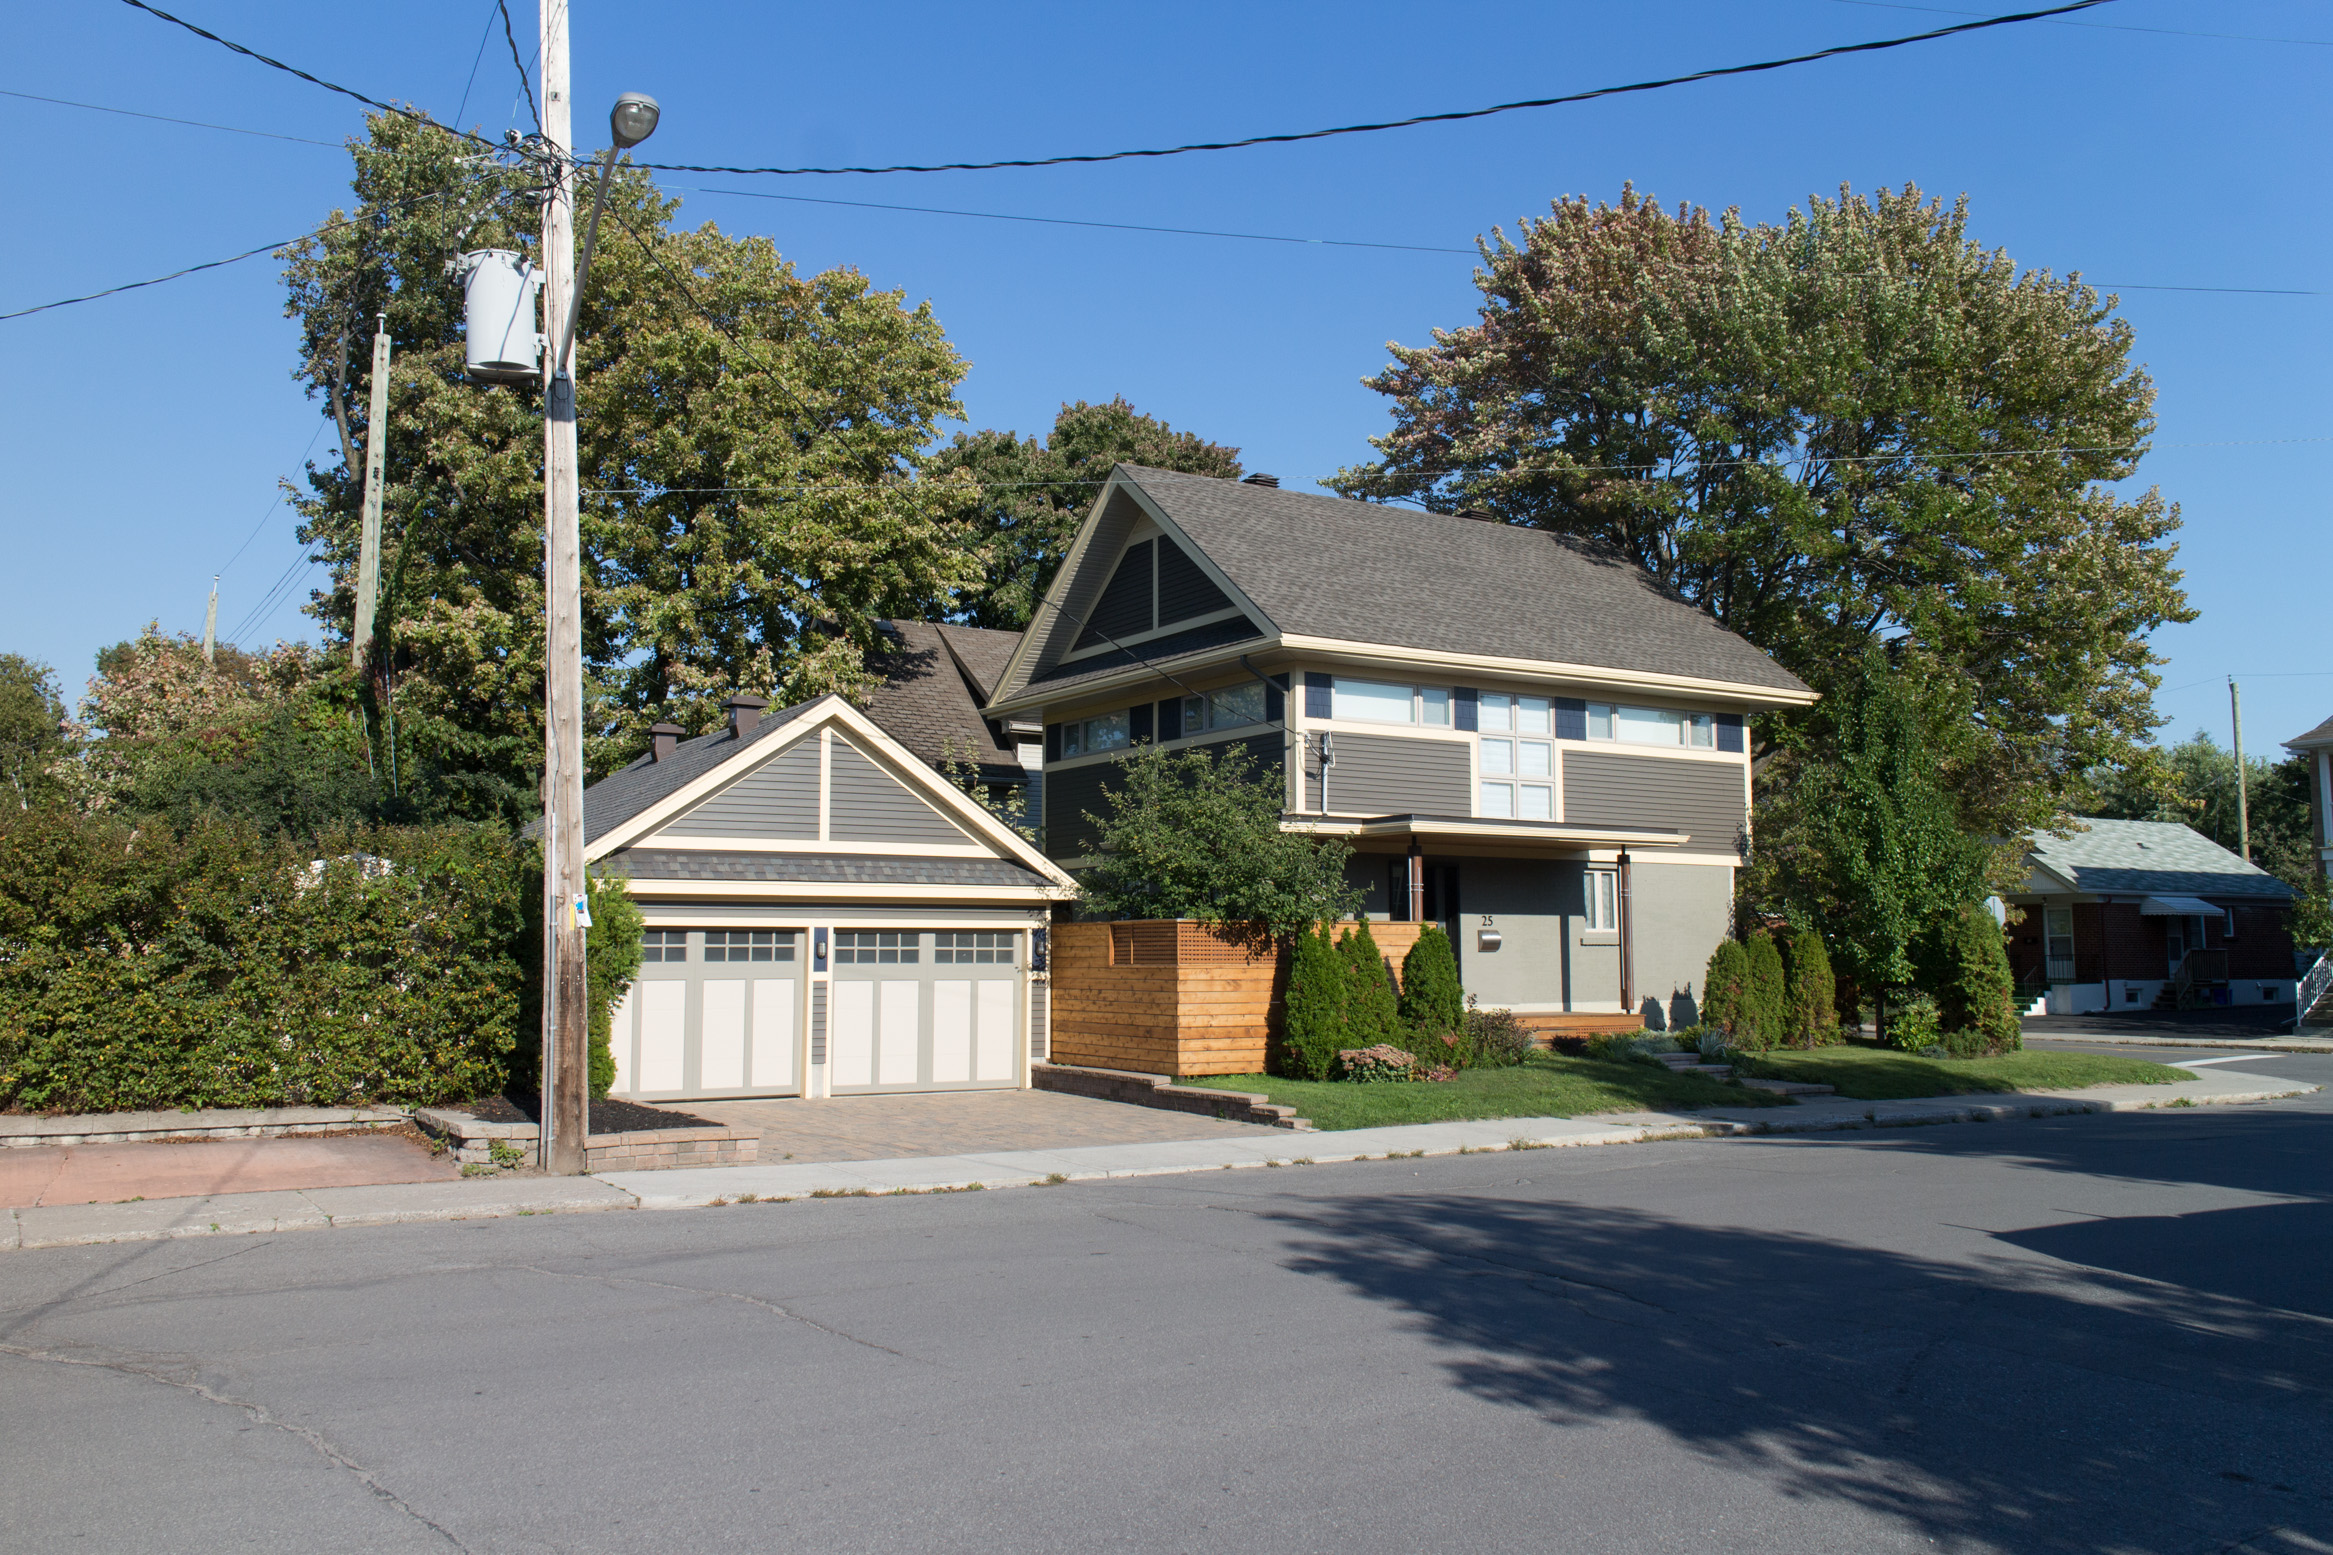 After - Street View - Siding and Trim